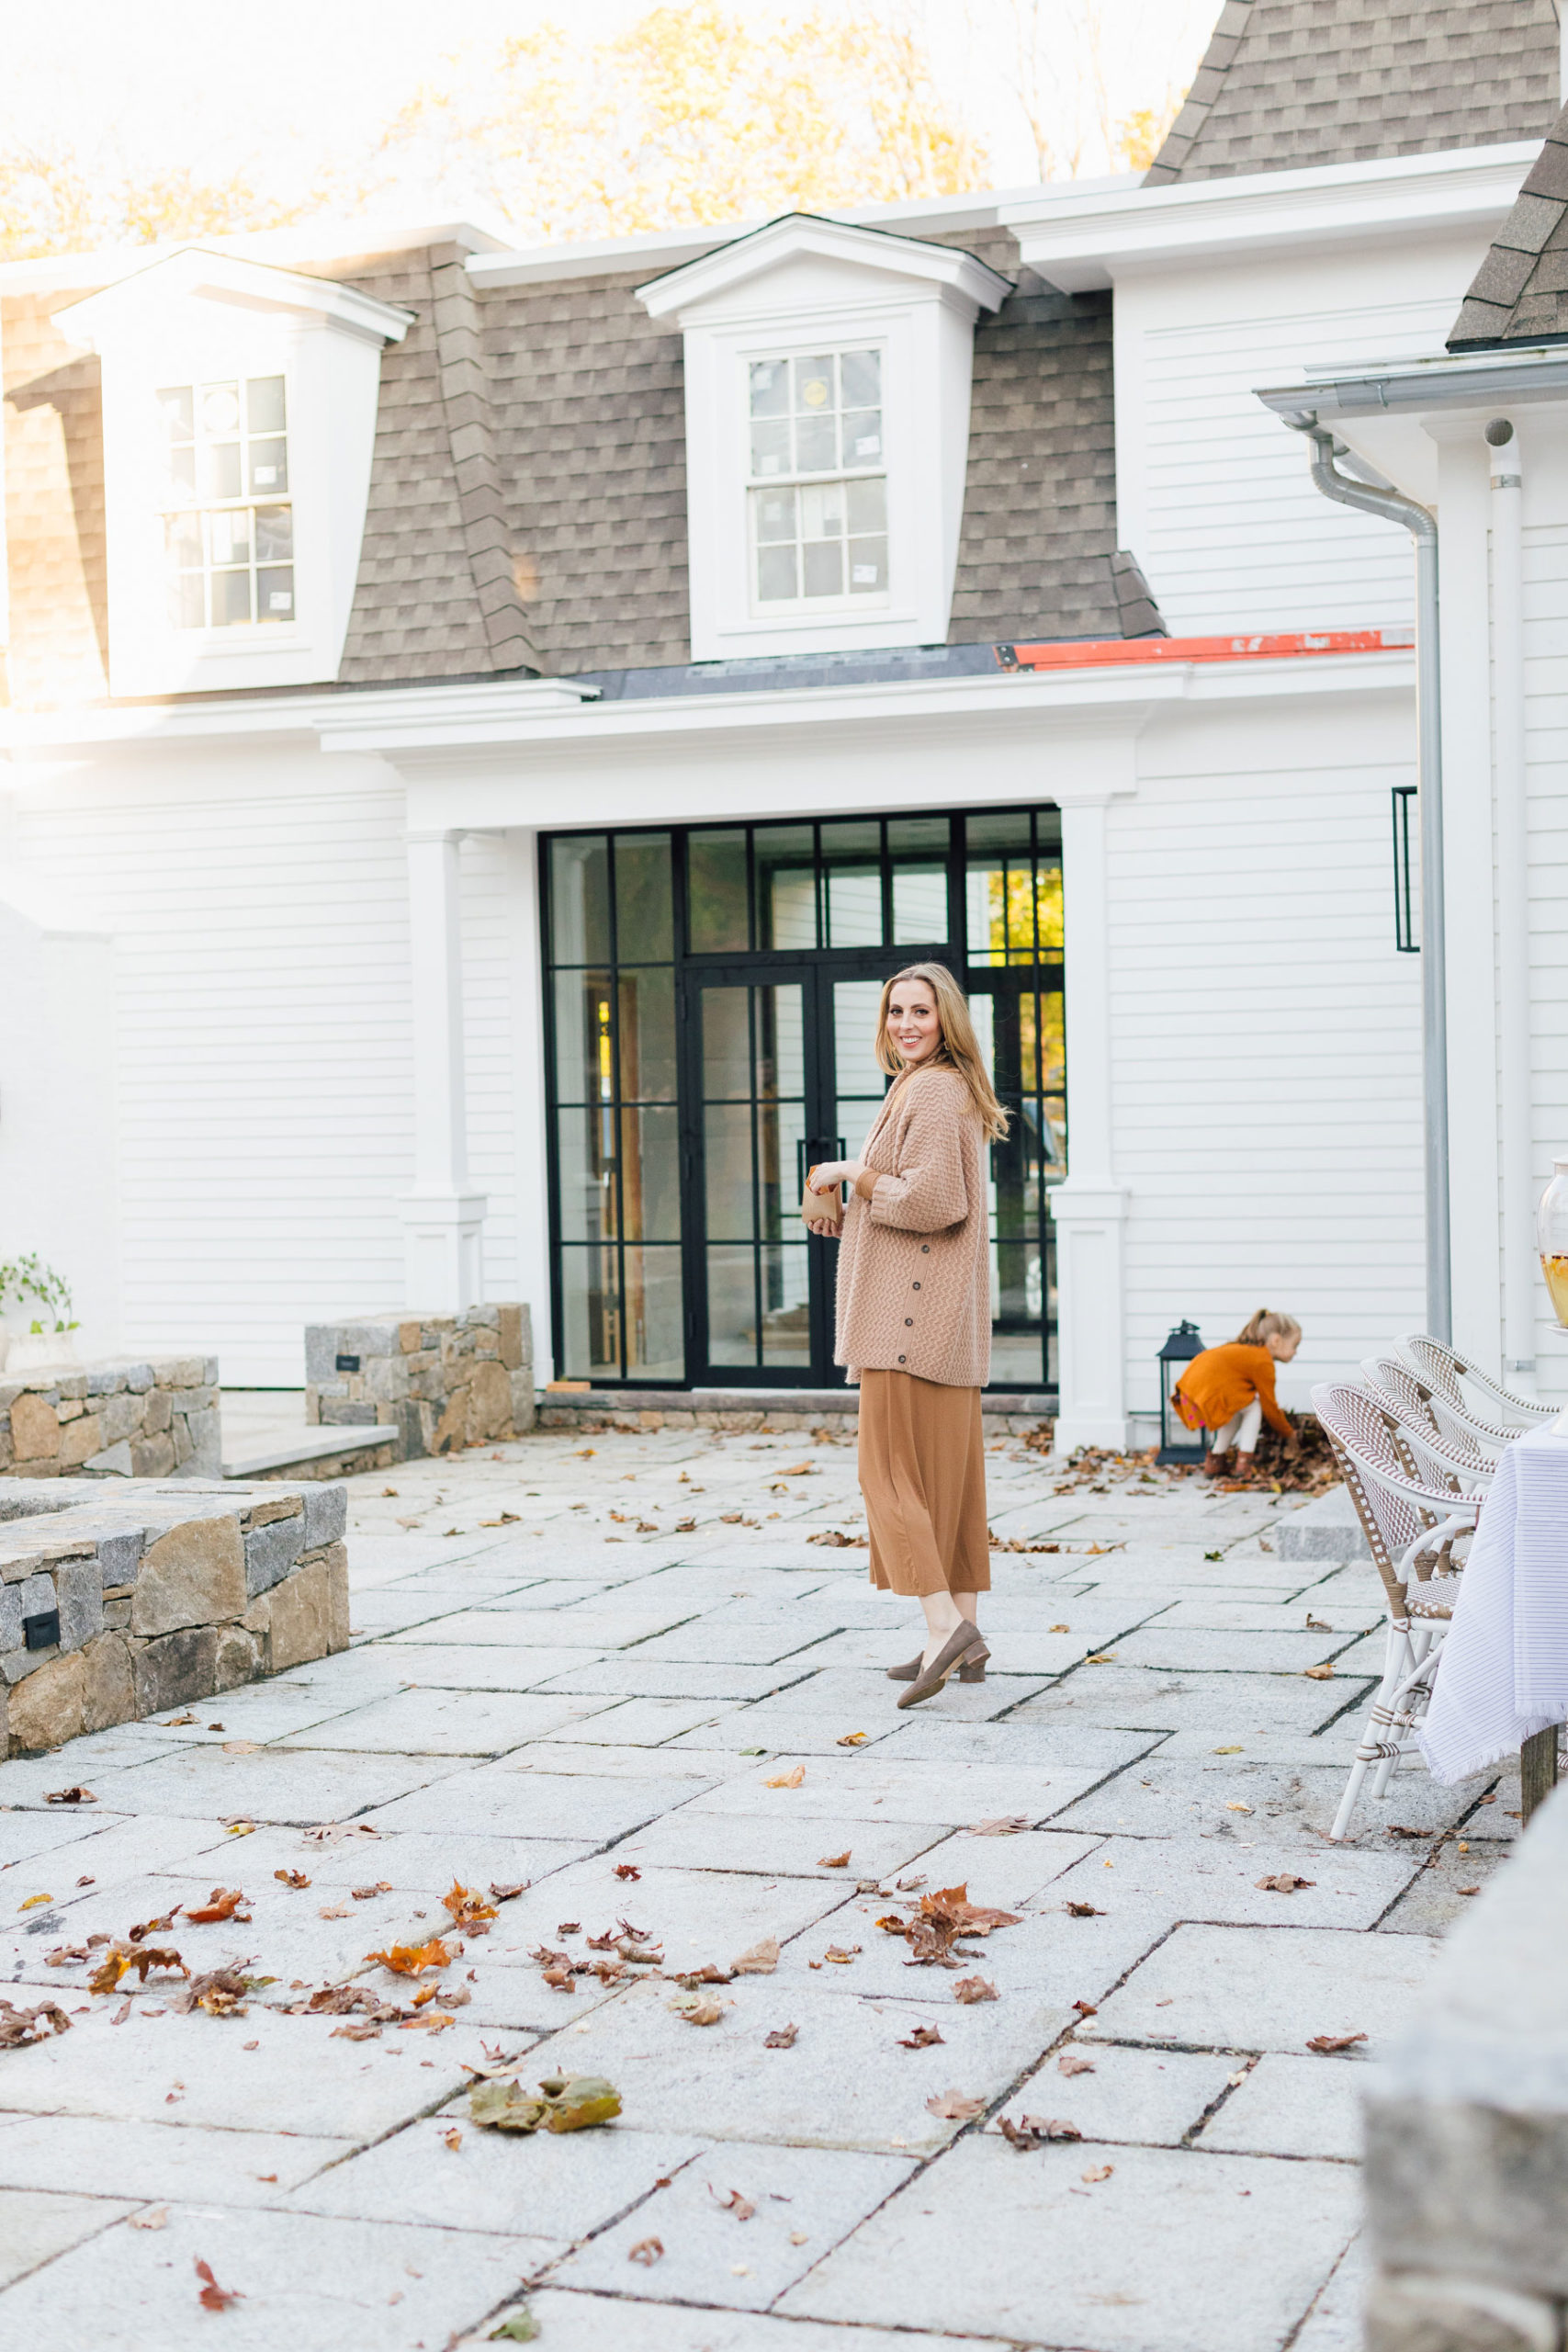 Eva Amurri prepares for an outdoor movie night on the back patio of her Connecticut home